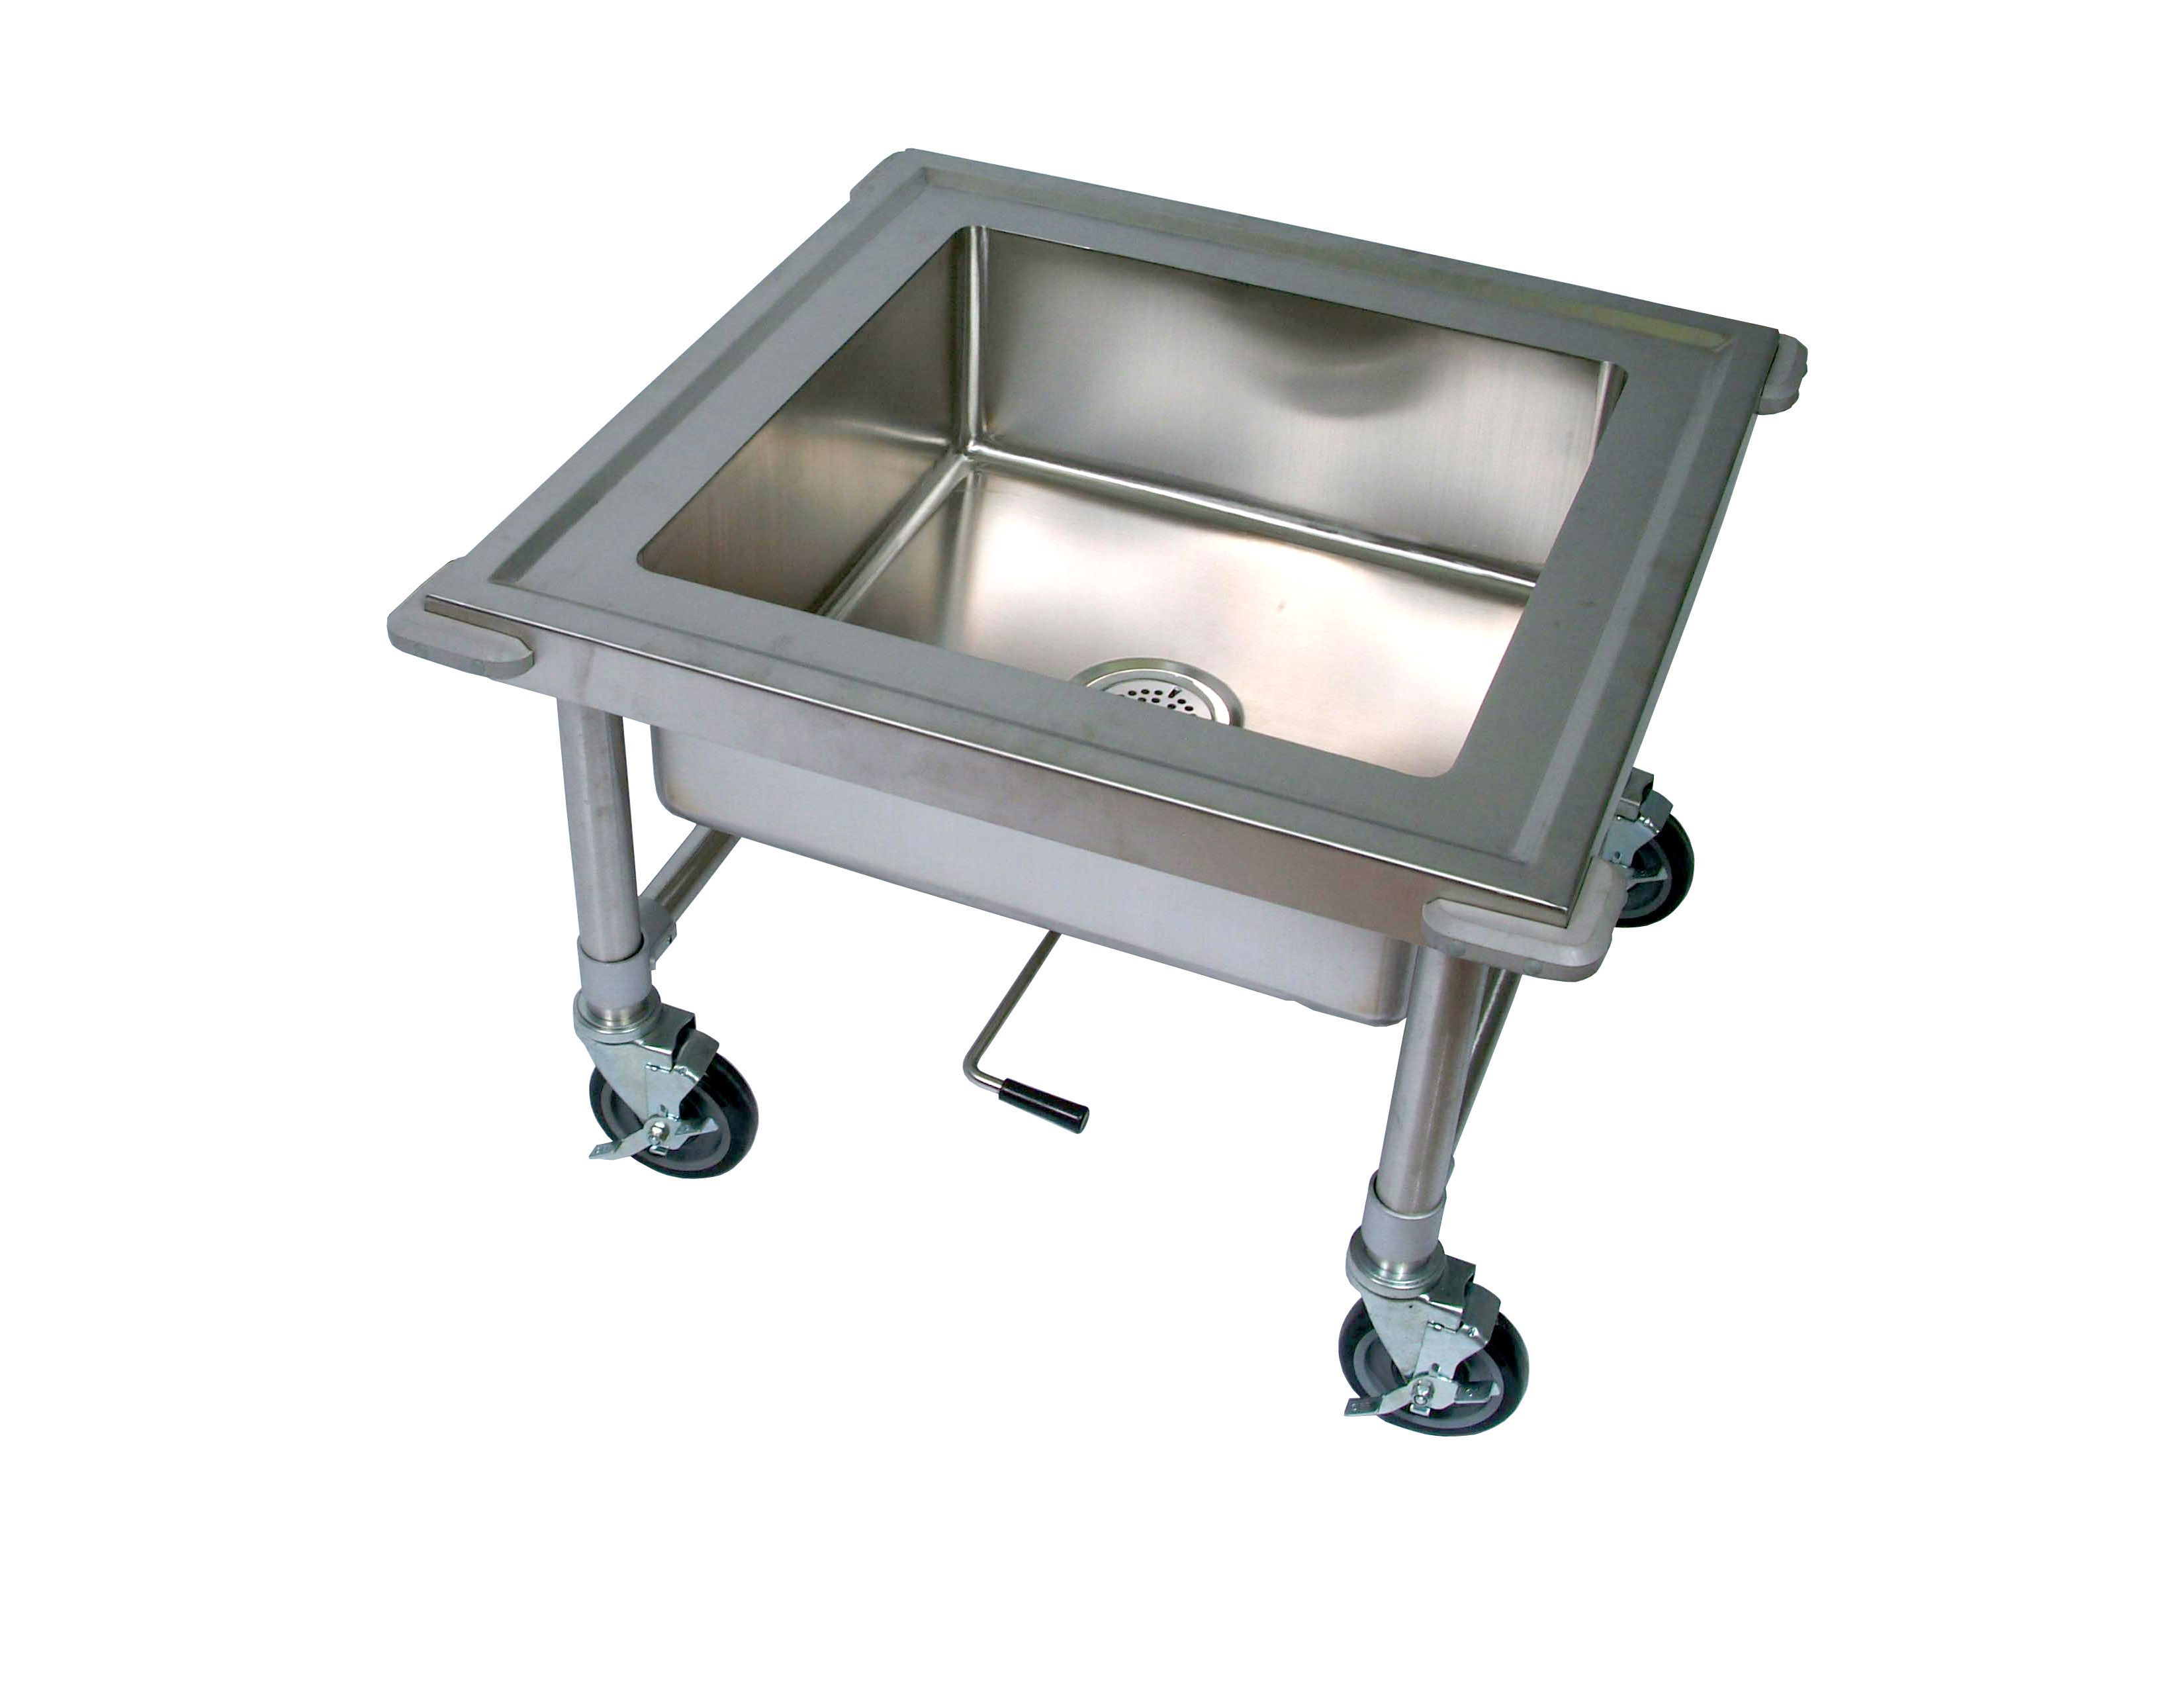 Kitchen sink stainless steel double drainer single bowl in vic ebay - Quality Commercial Kitchen Equipment All Stainless Heavy Duty Soak Sink W Marine Edge